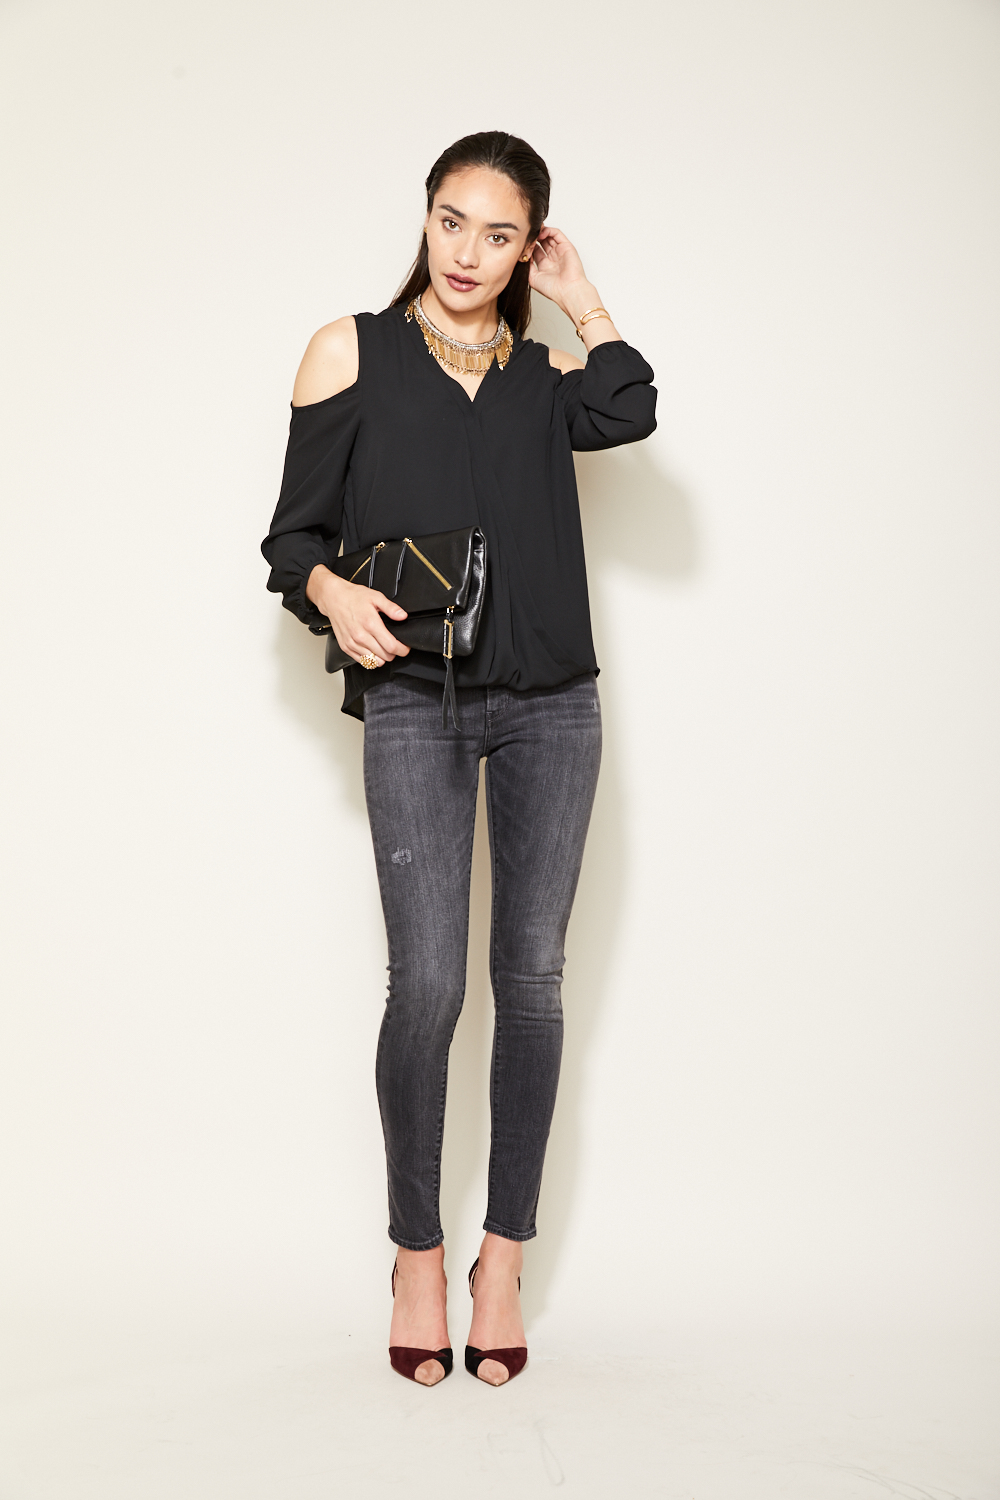 2. The Gray Skinny - We love grey jeans because they are an unexpected color that surprisingly goes with everything. Dress them up for a night on the town with our black Everett Cold Shoulder top, or relaxed with your favorite flats and leather jacket. They have just enough distressing to be causal, and not too crazy to be dressed up. #perfection